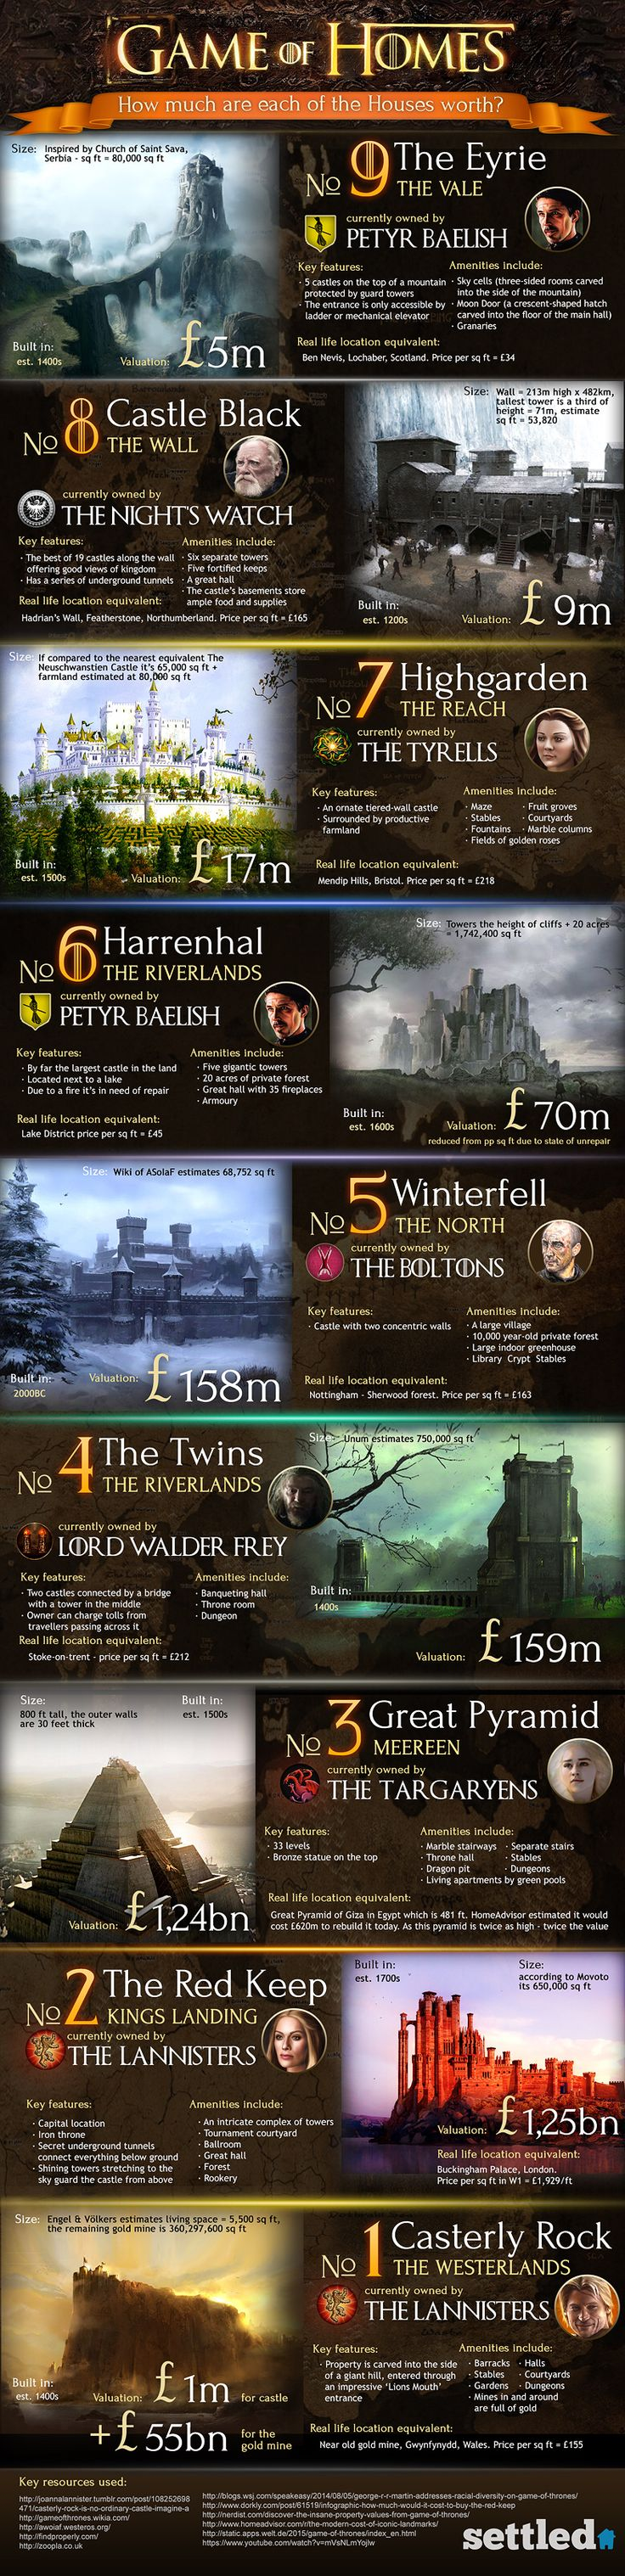 [Click on it. There's more.] Various castles in Westeros. I first saw this after the end of season 7, and it's remarkable how many of these key characters are now dead!